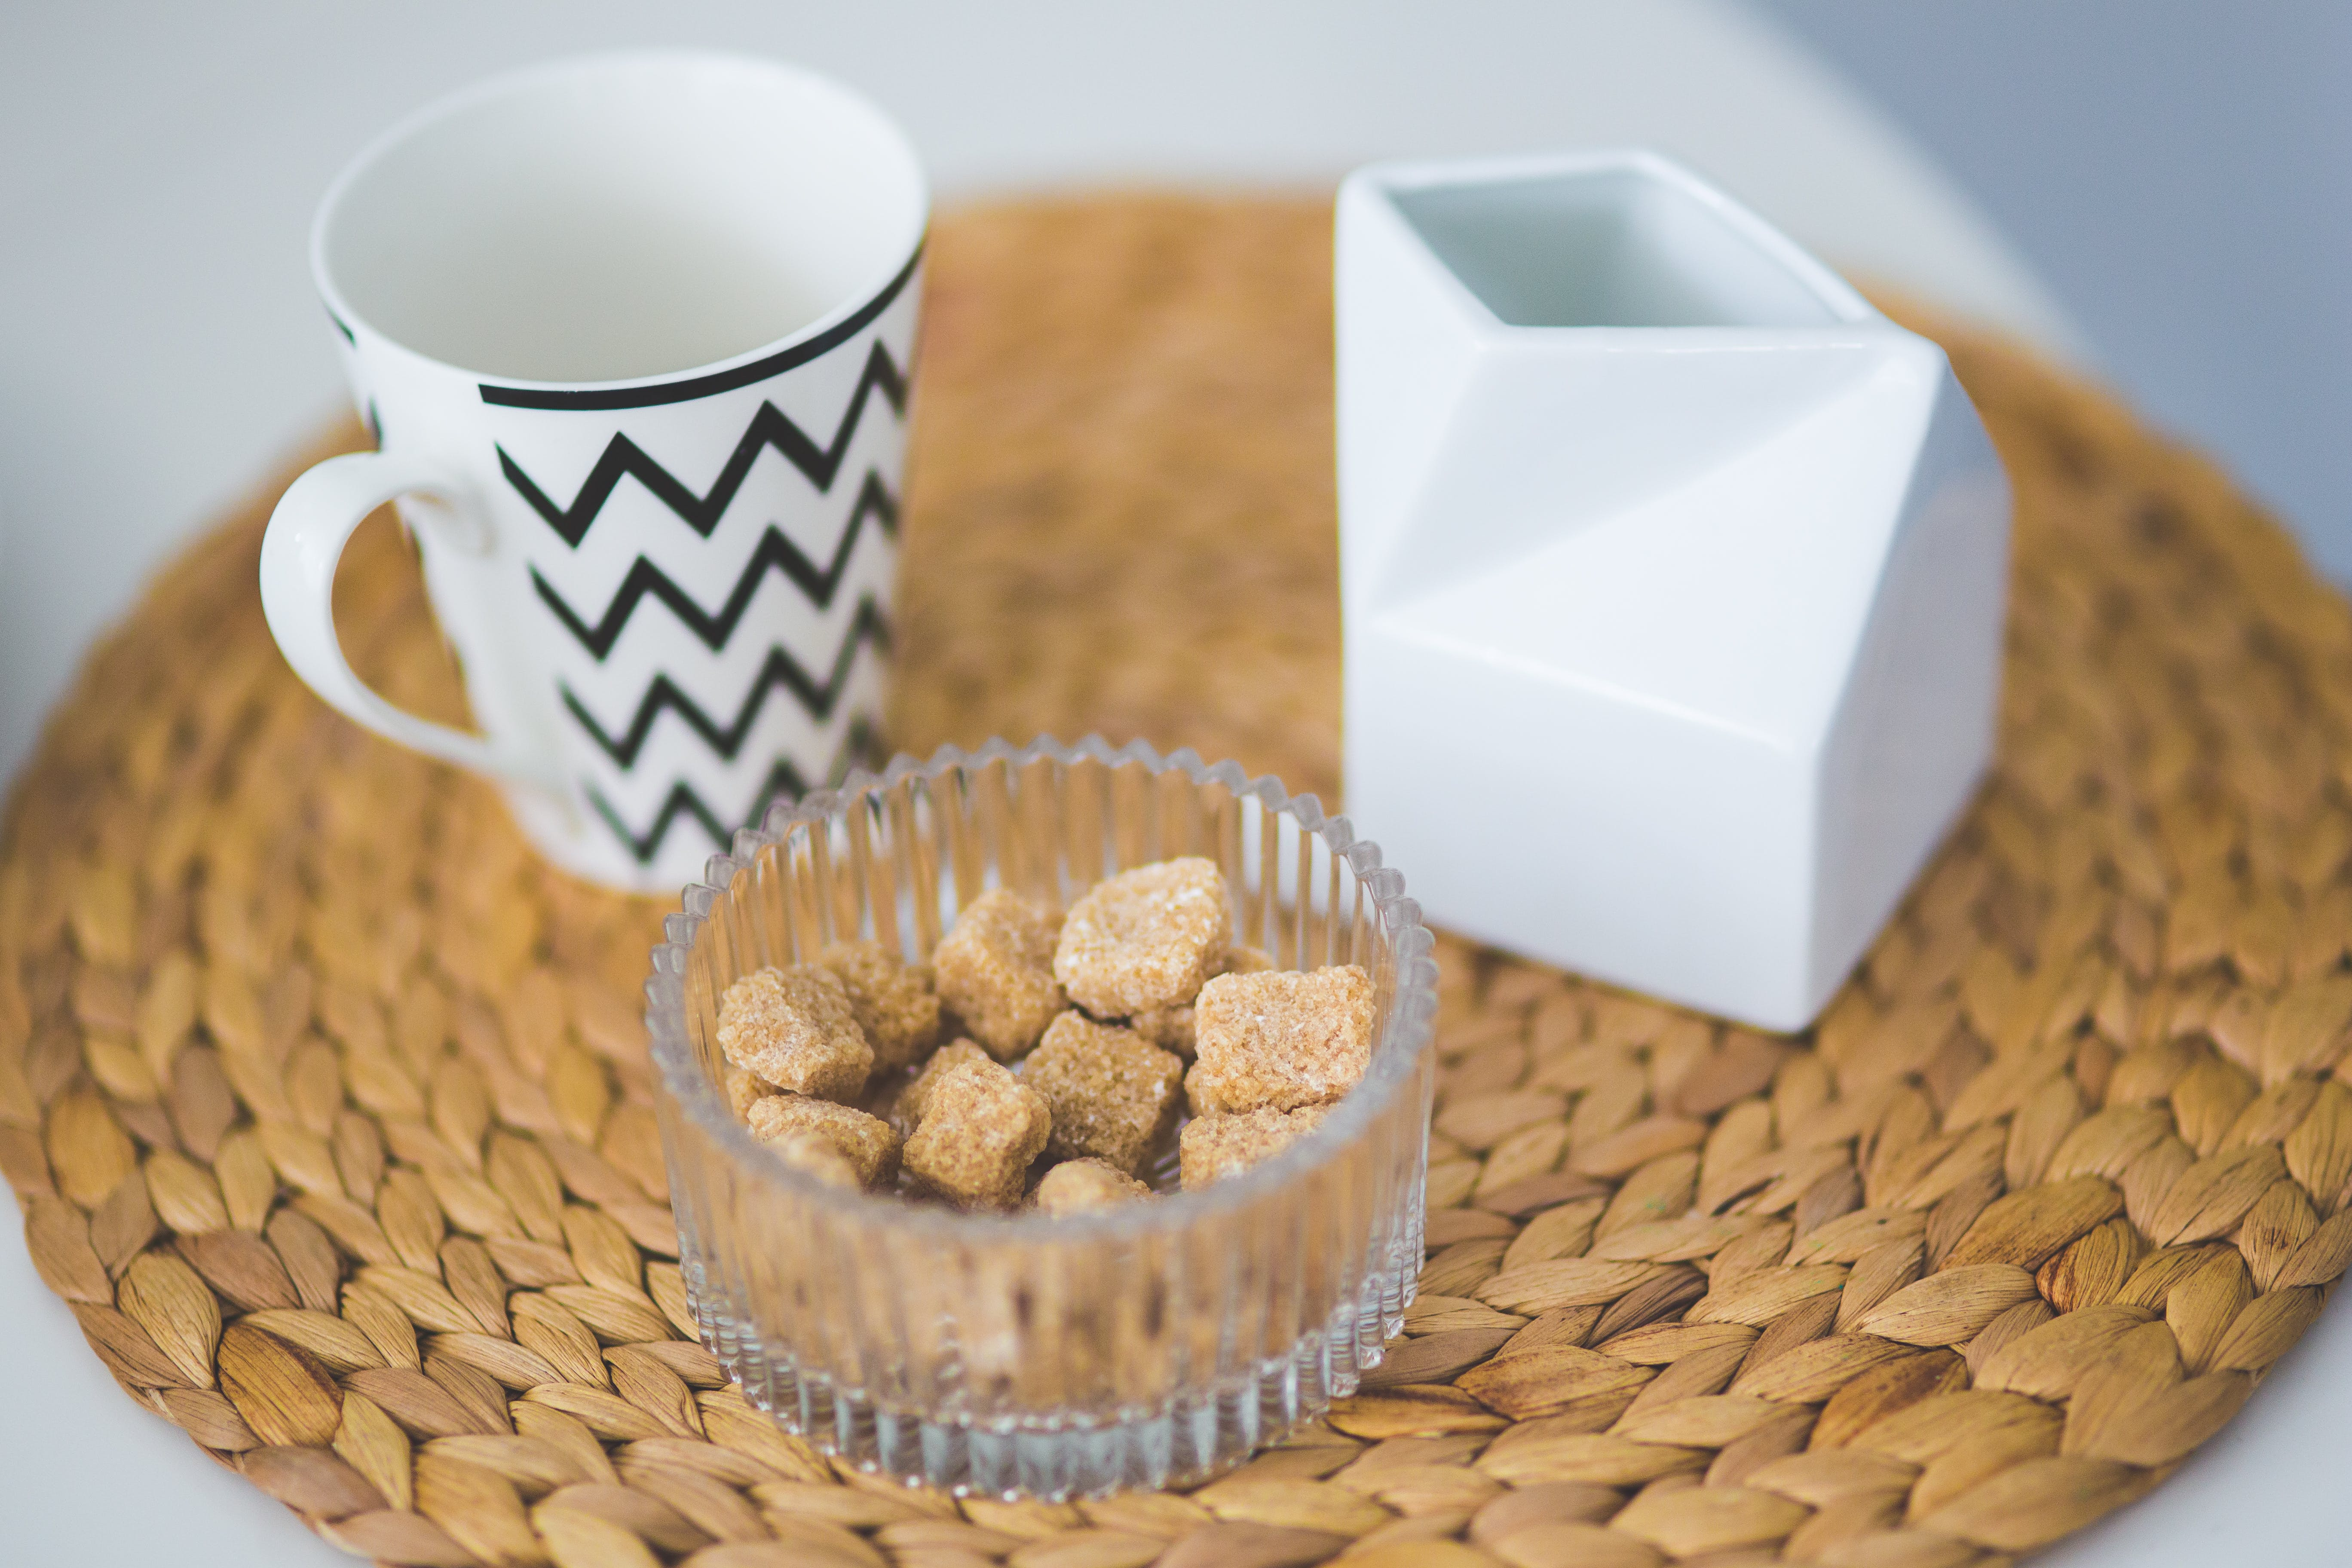 Brown sugar cubes in a dish